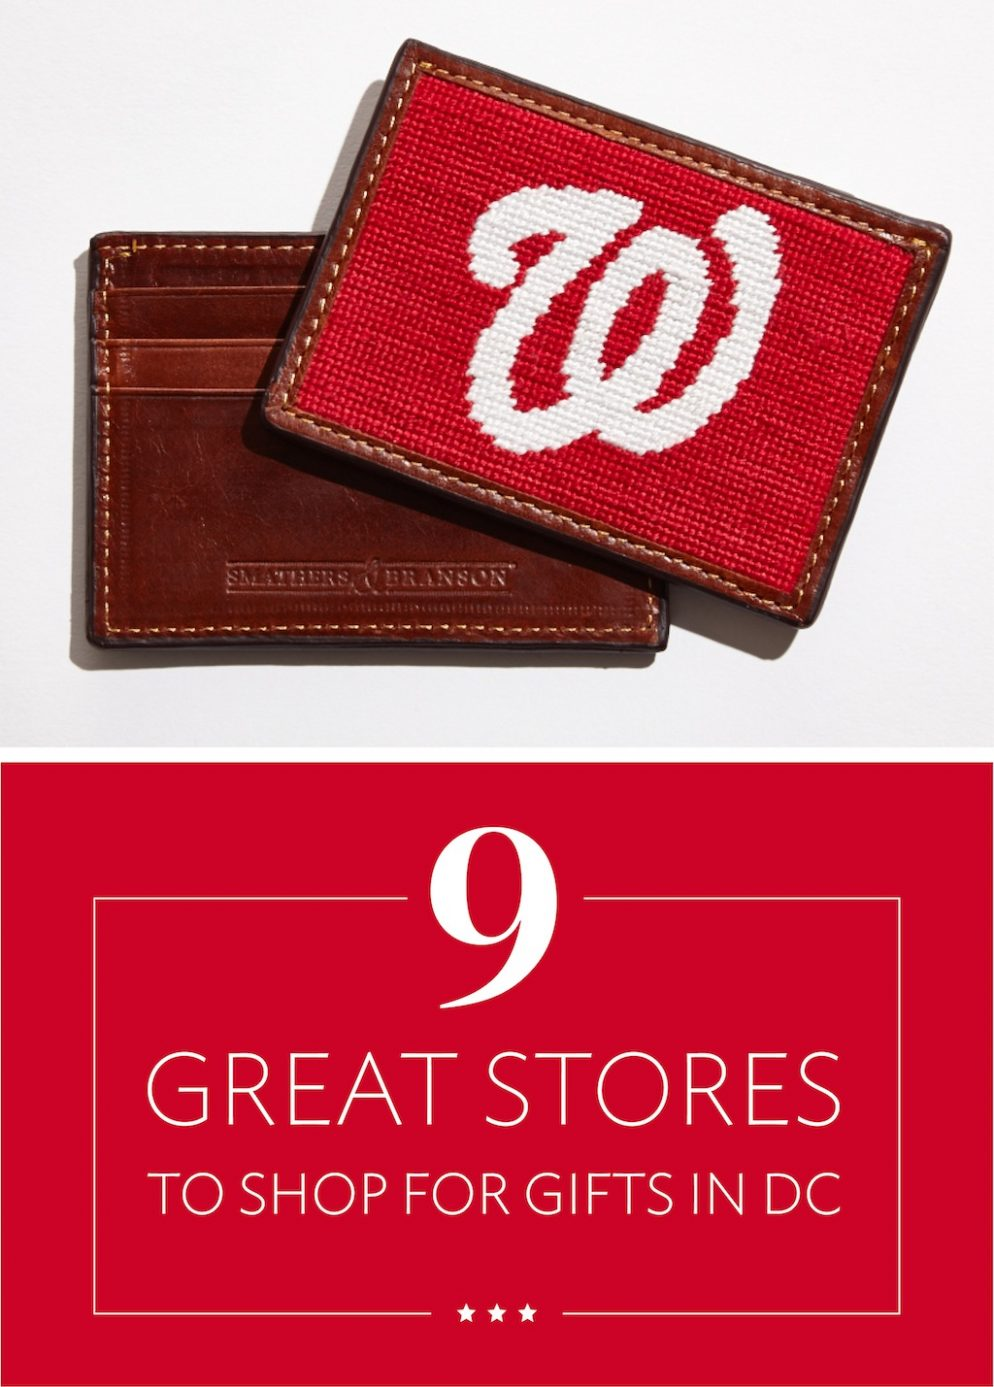 5th Wedding Anniversary Gift Ideas 59 Superb  Great Stores to